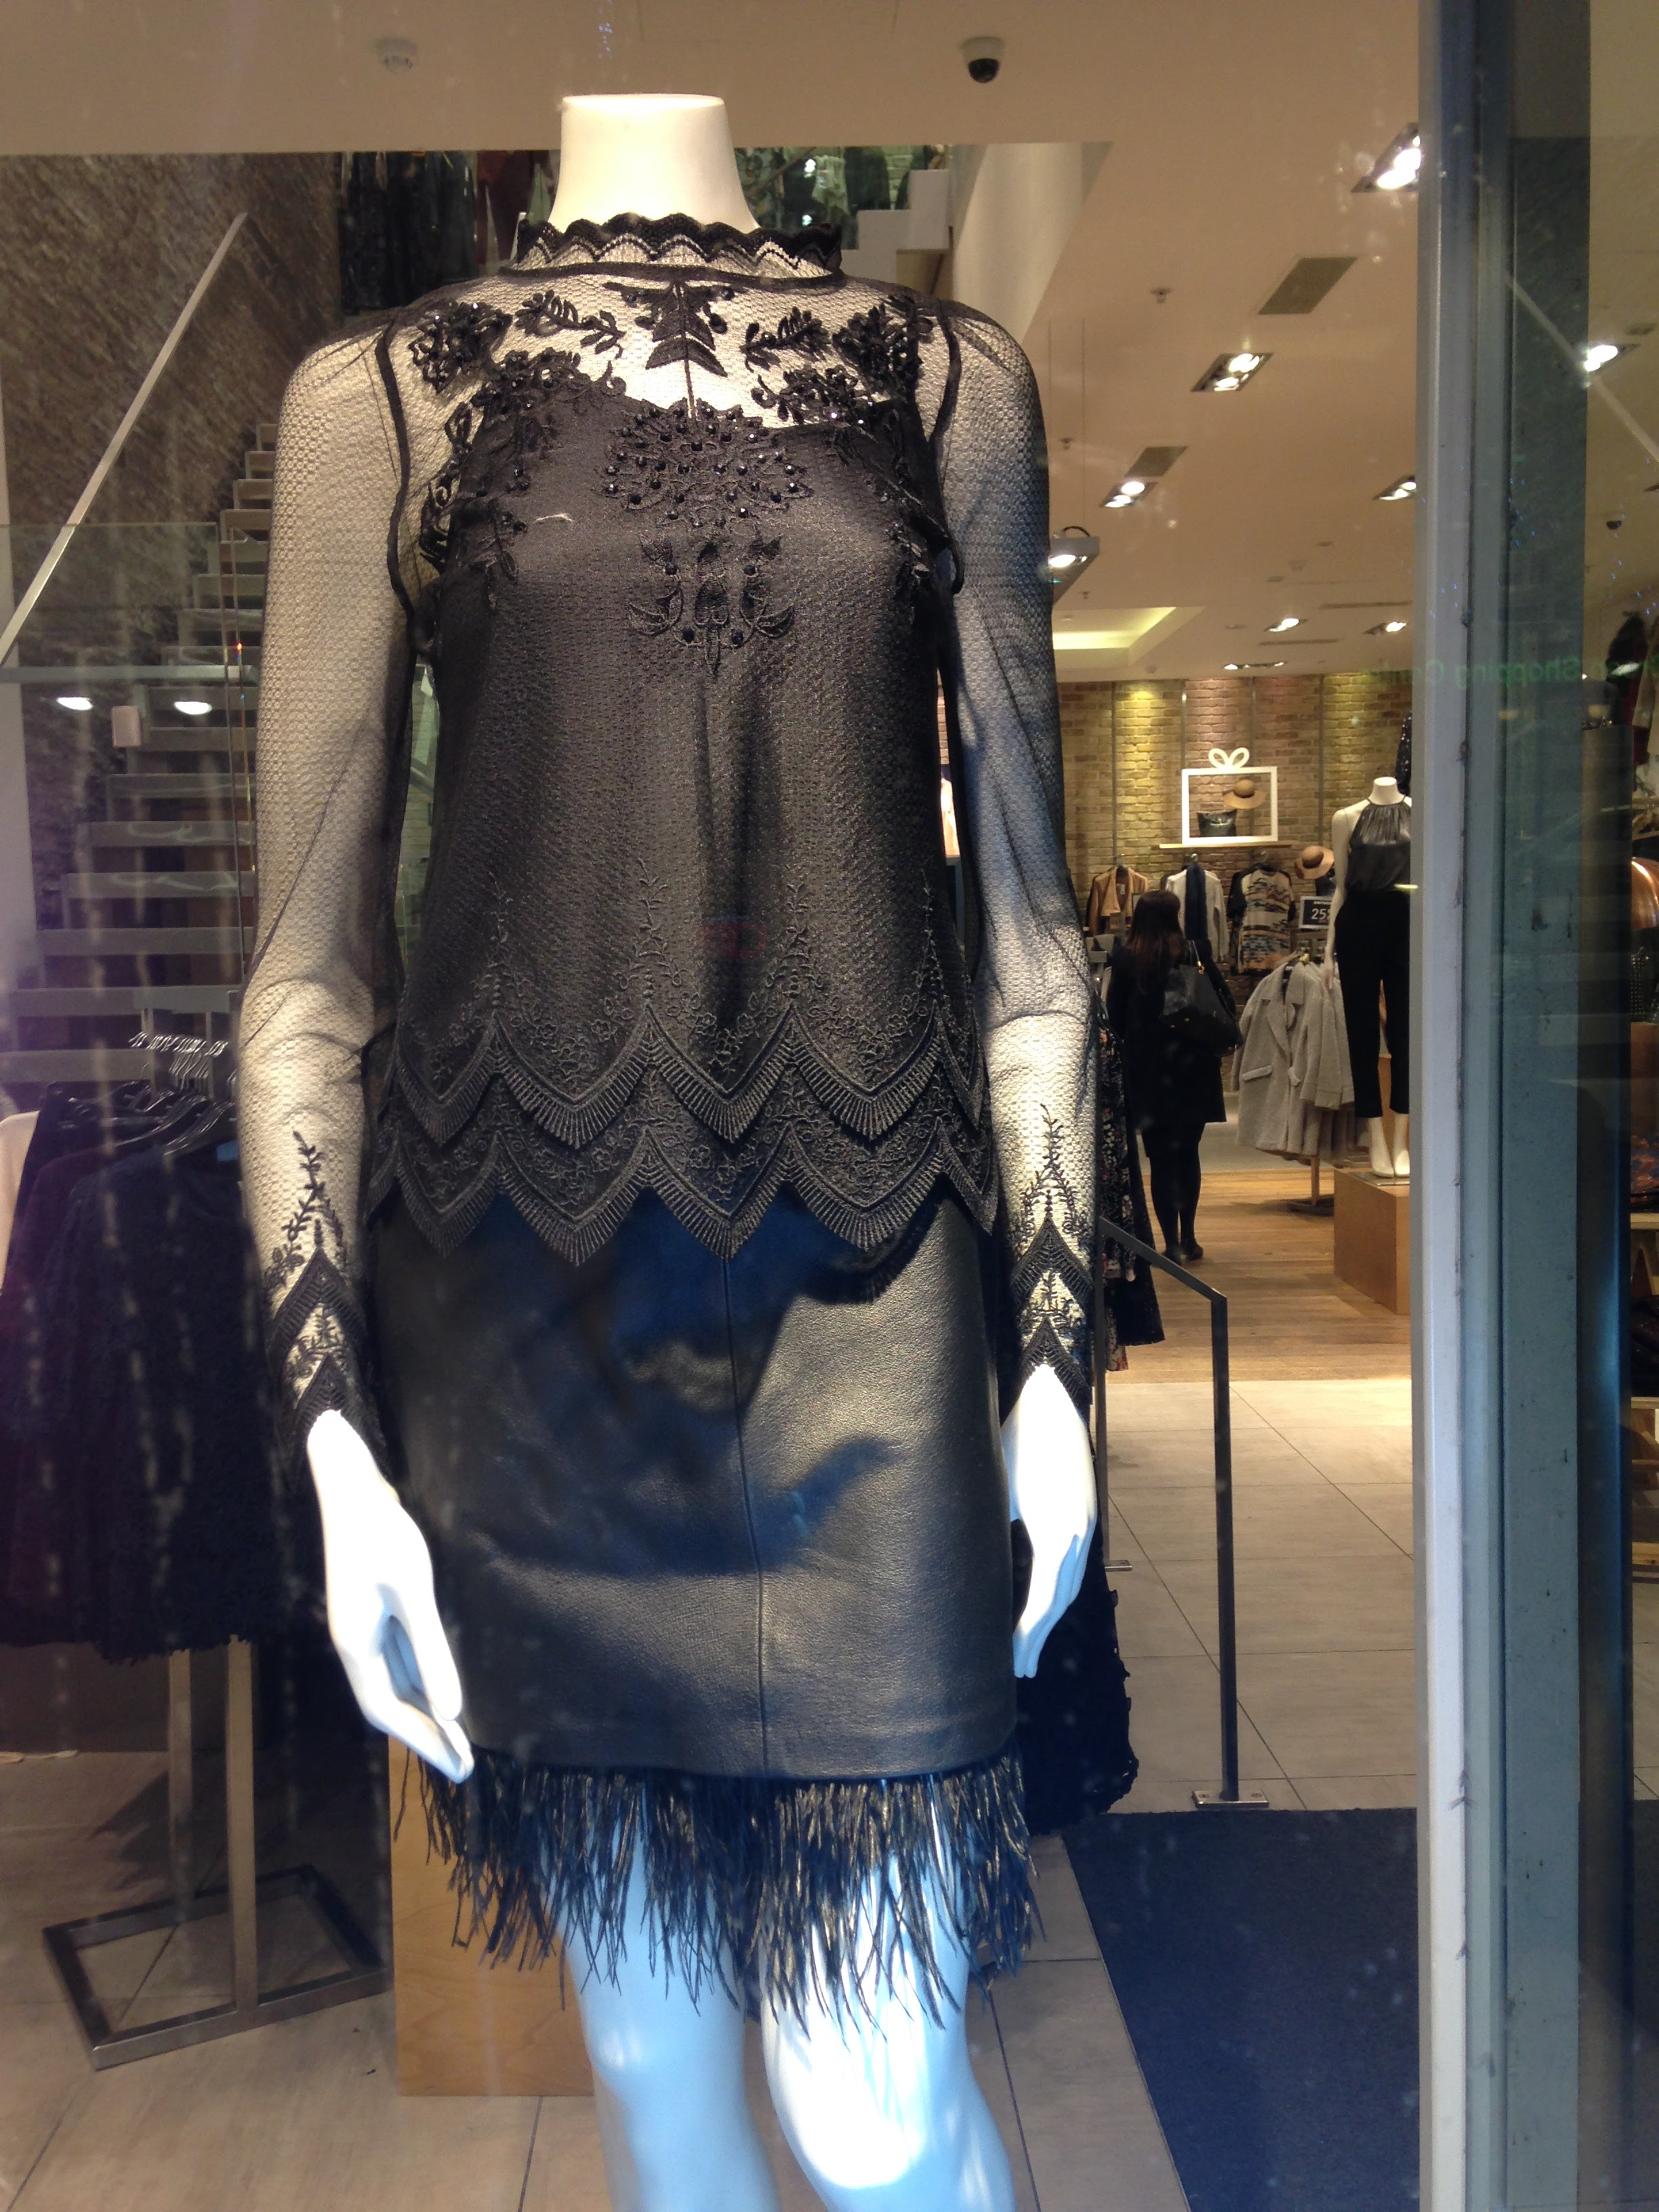 Warehouse! Fab black long sleeved lace top €72 worn with Black leather skirt with feather edging. I love this! €84